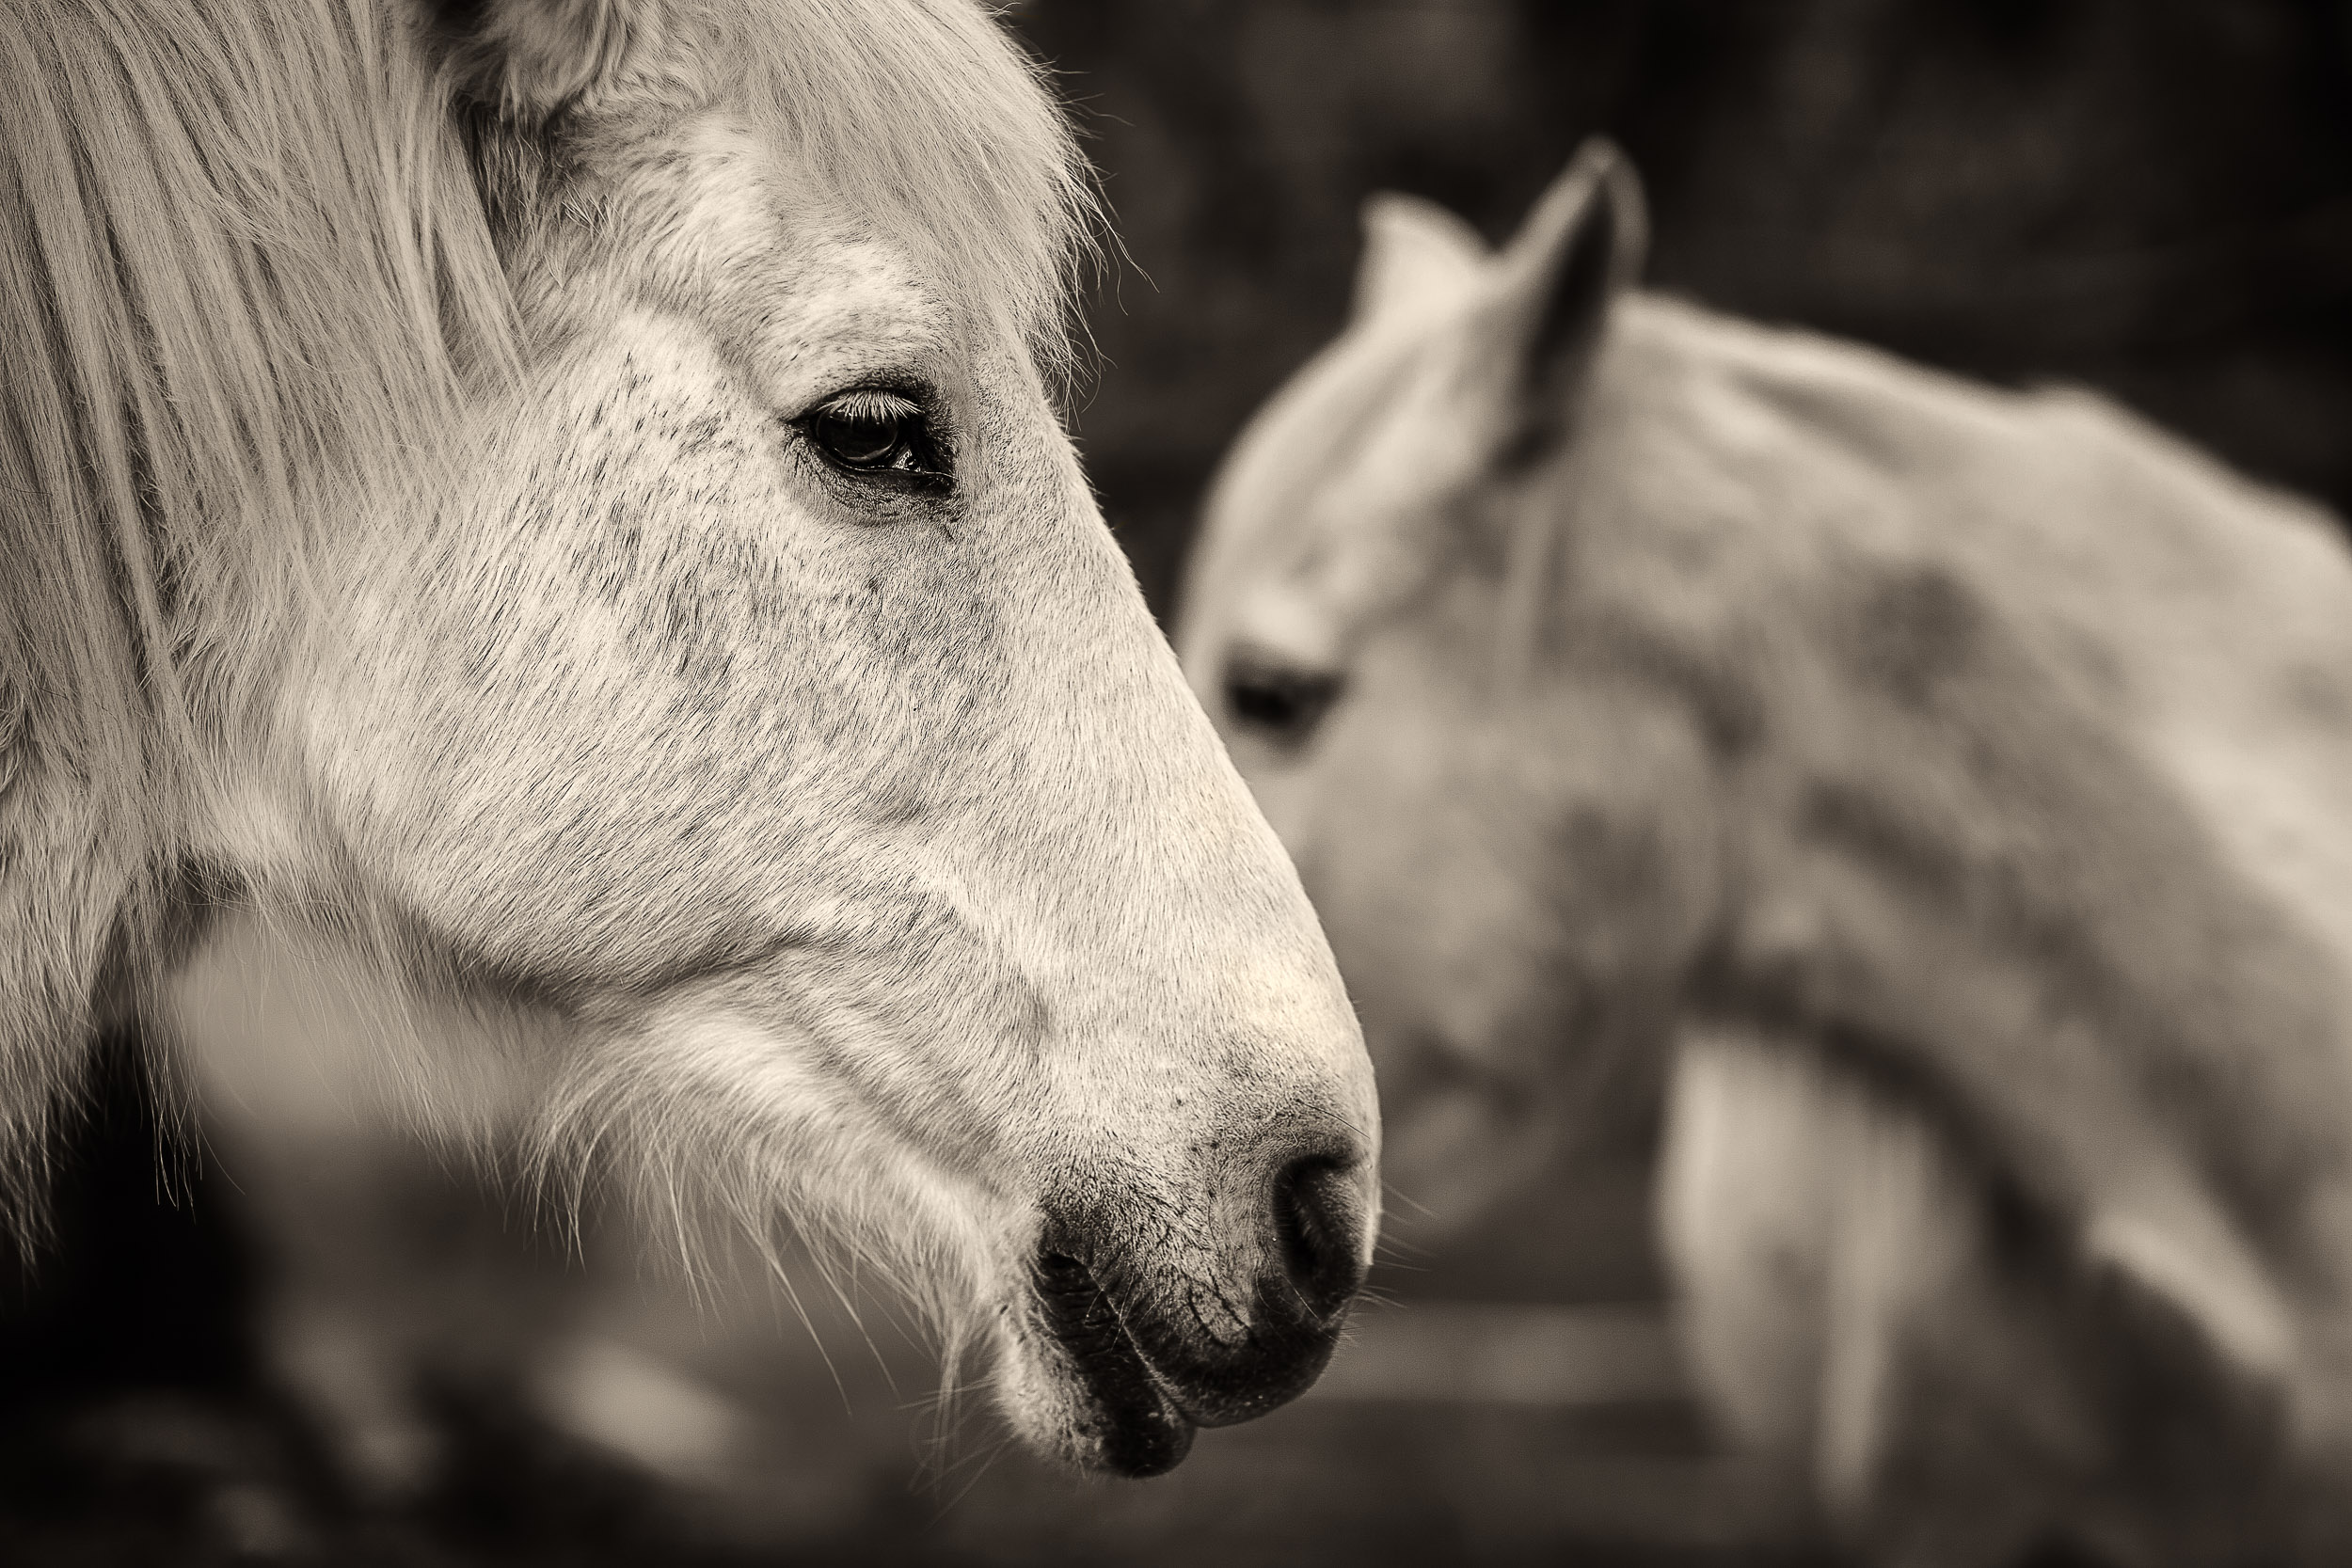 An intimate and visually compelling moment of    two horses at dusk    photographed with a short camera to subject distance.